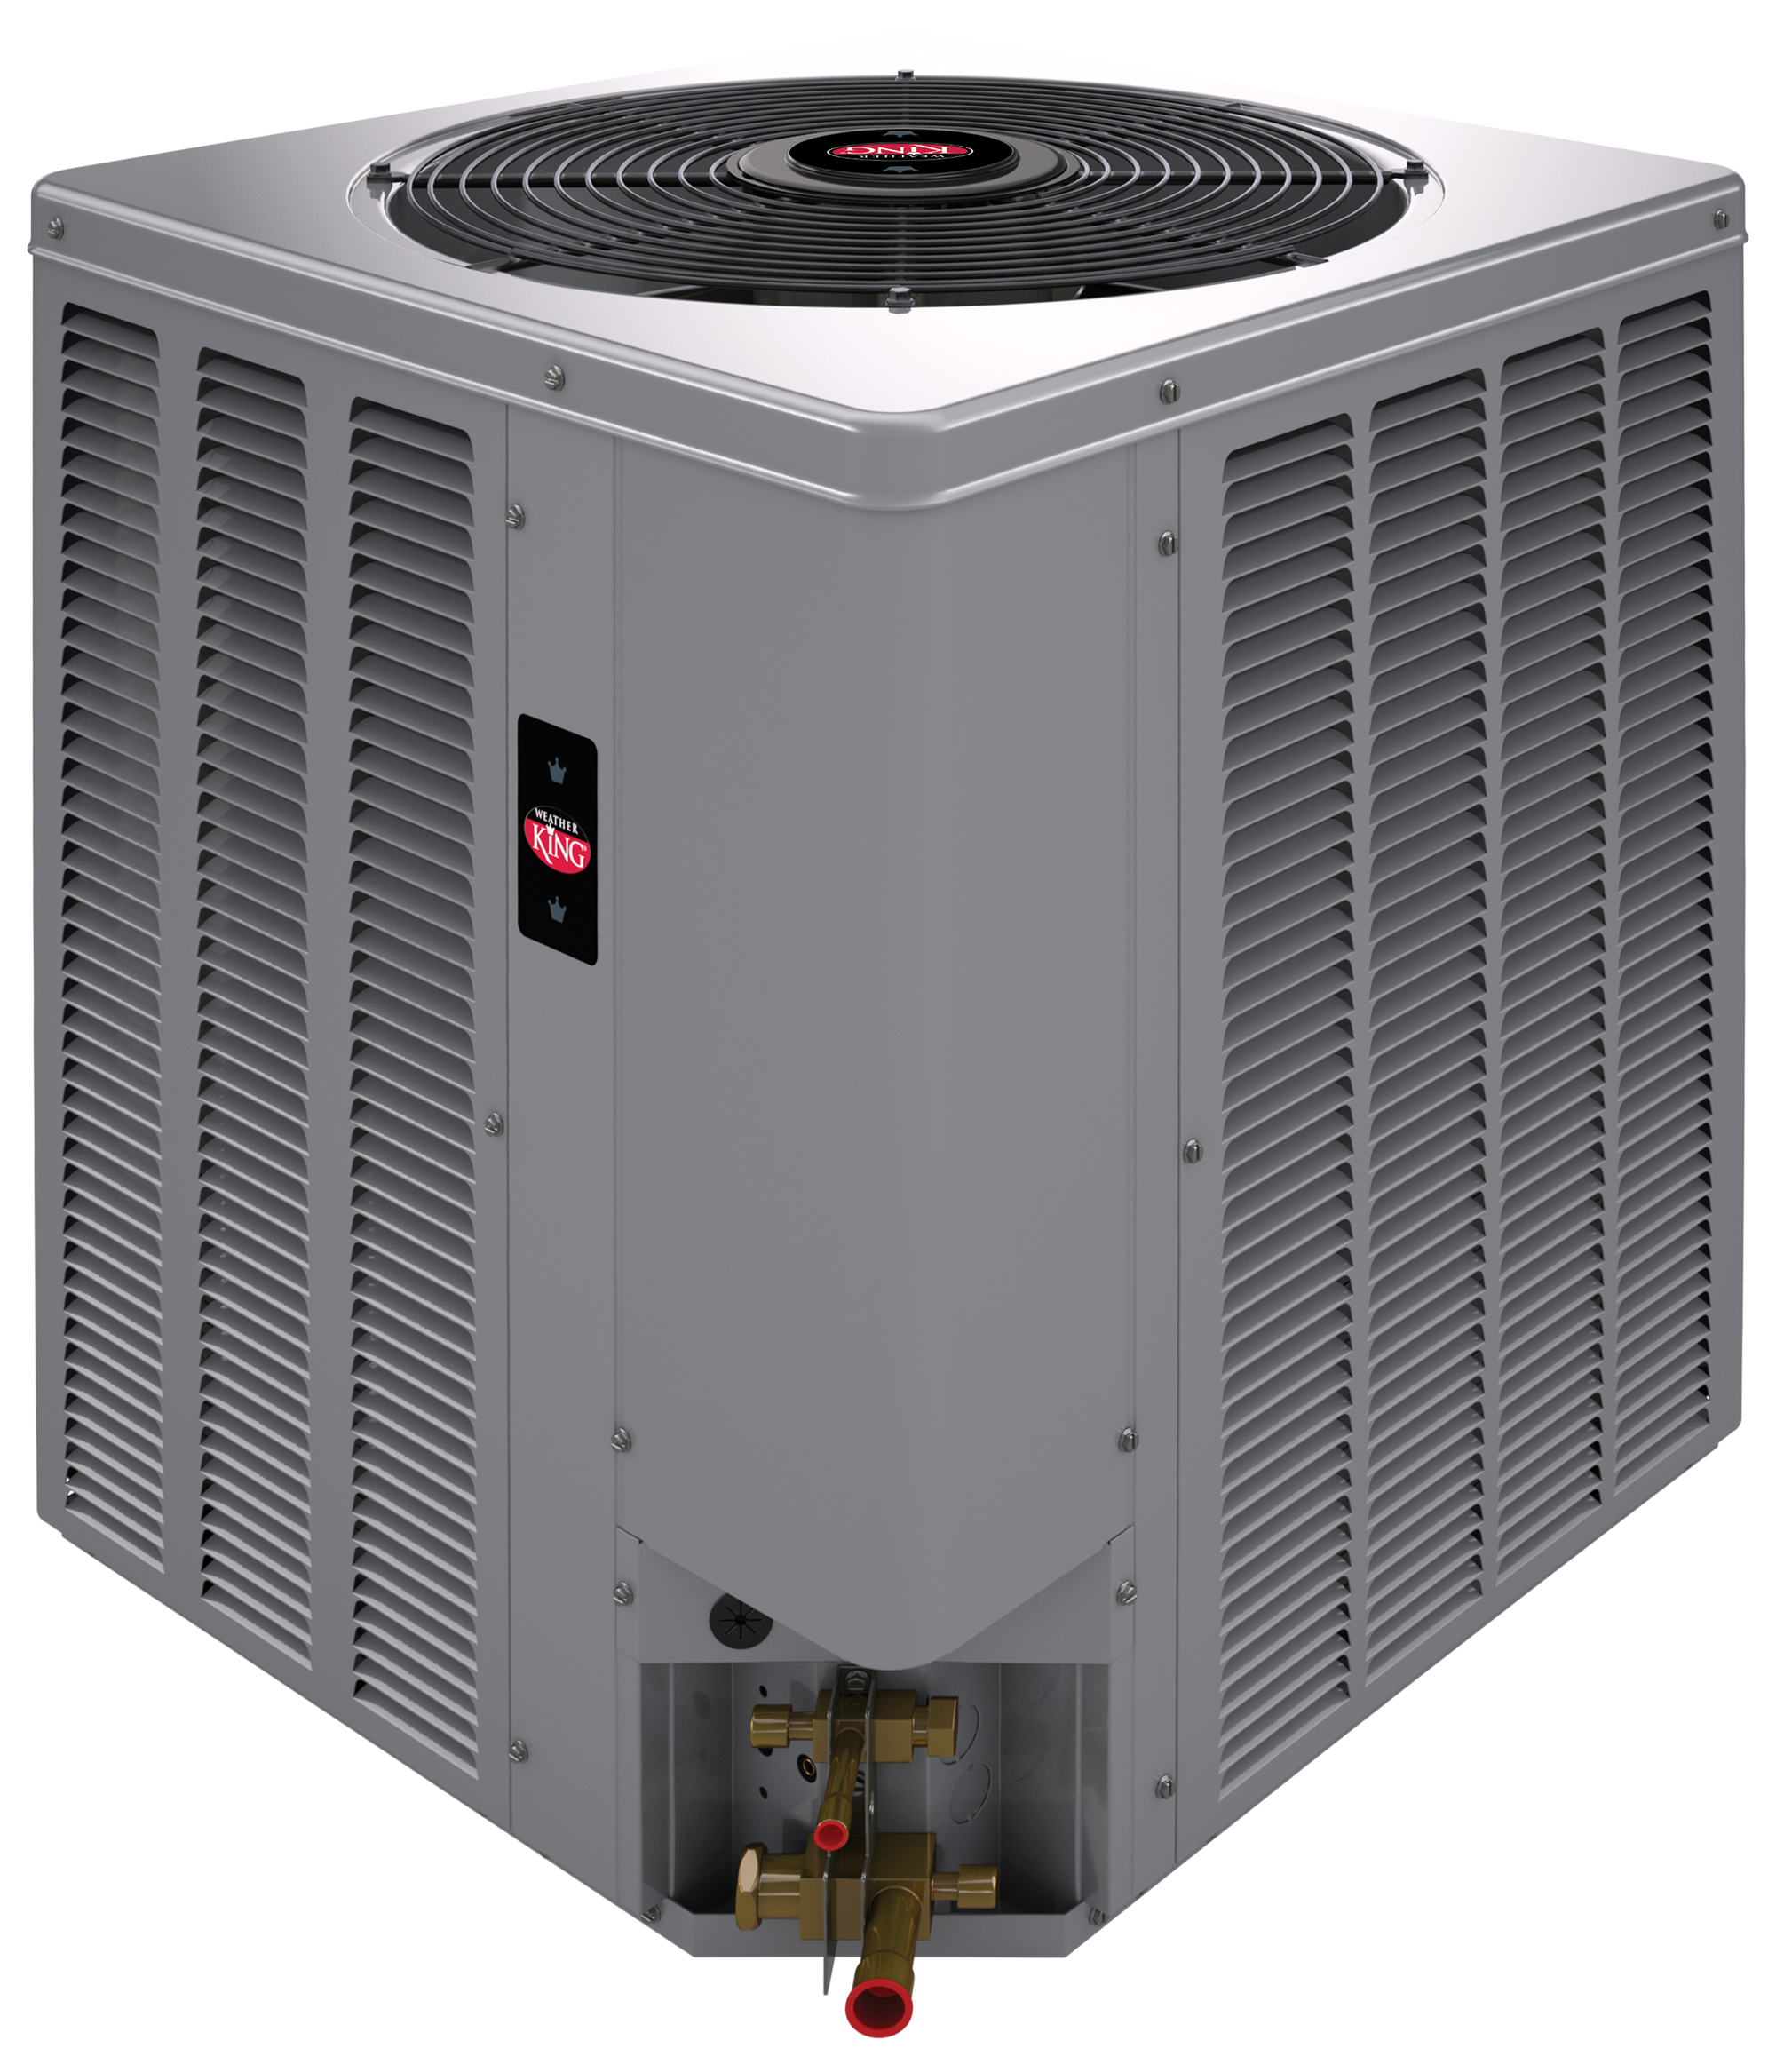 WEATHER KING BY RHEEM® 3.5 TON 14 SEER HEAT PUMP AND AIR HANDLER